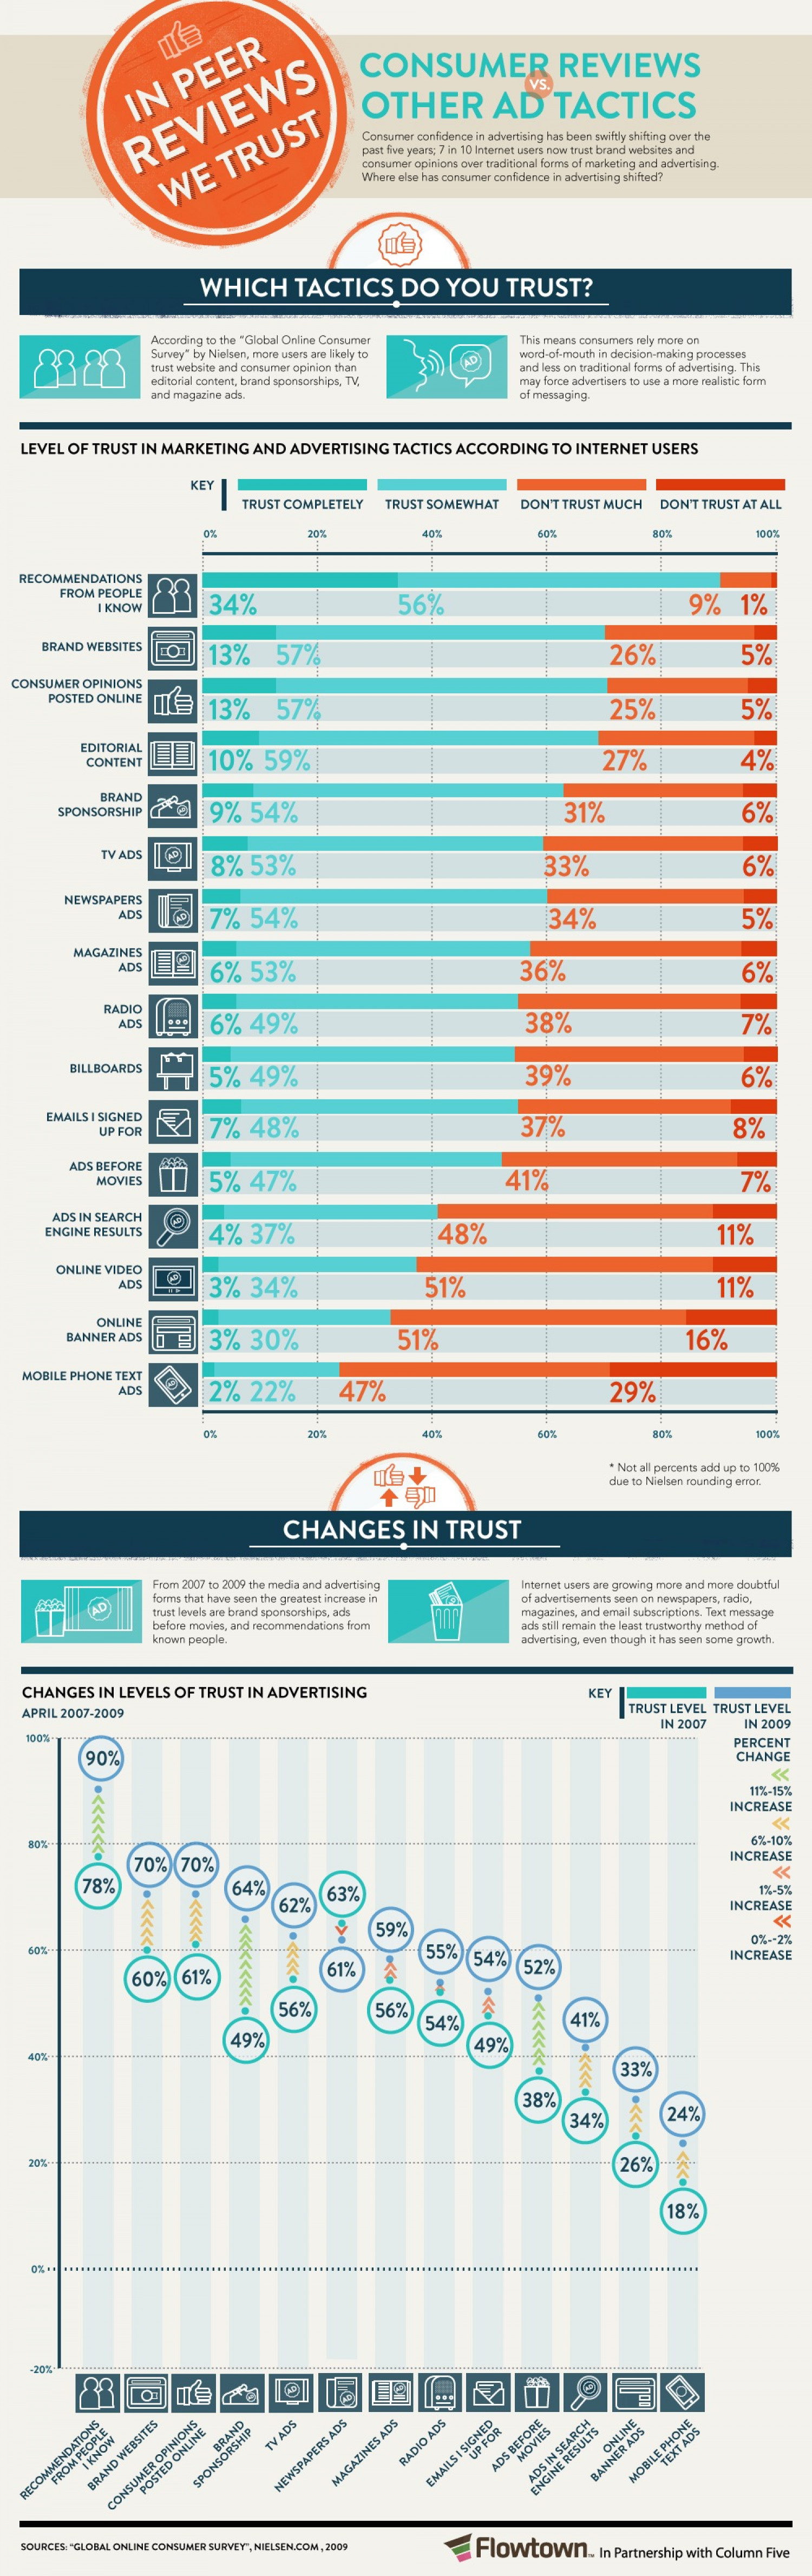 In Peer Review We Trust: Consumer Reviews vs. Other Ad Tactics Infographic